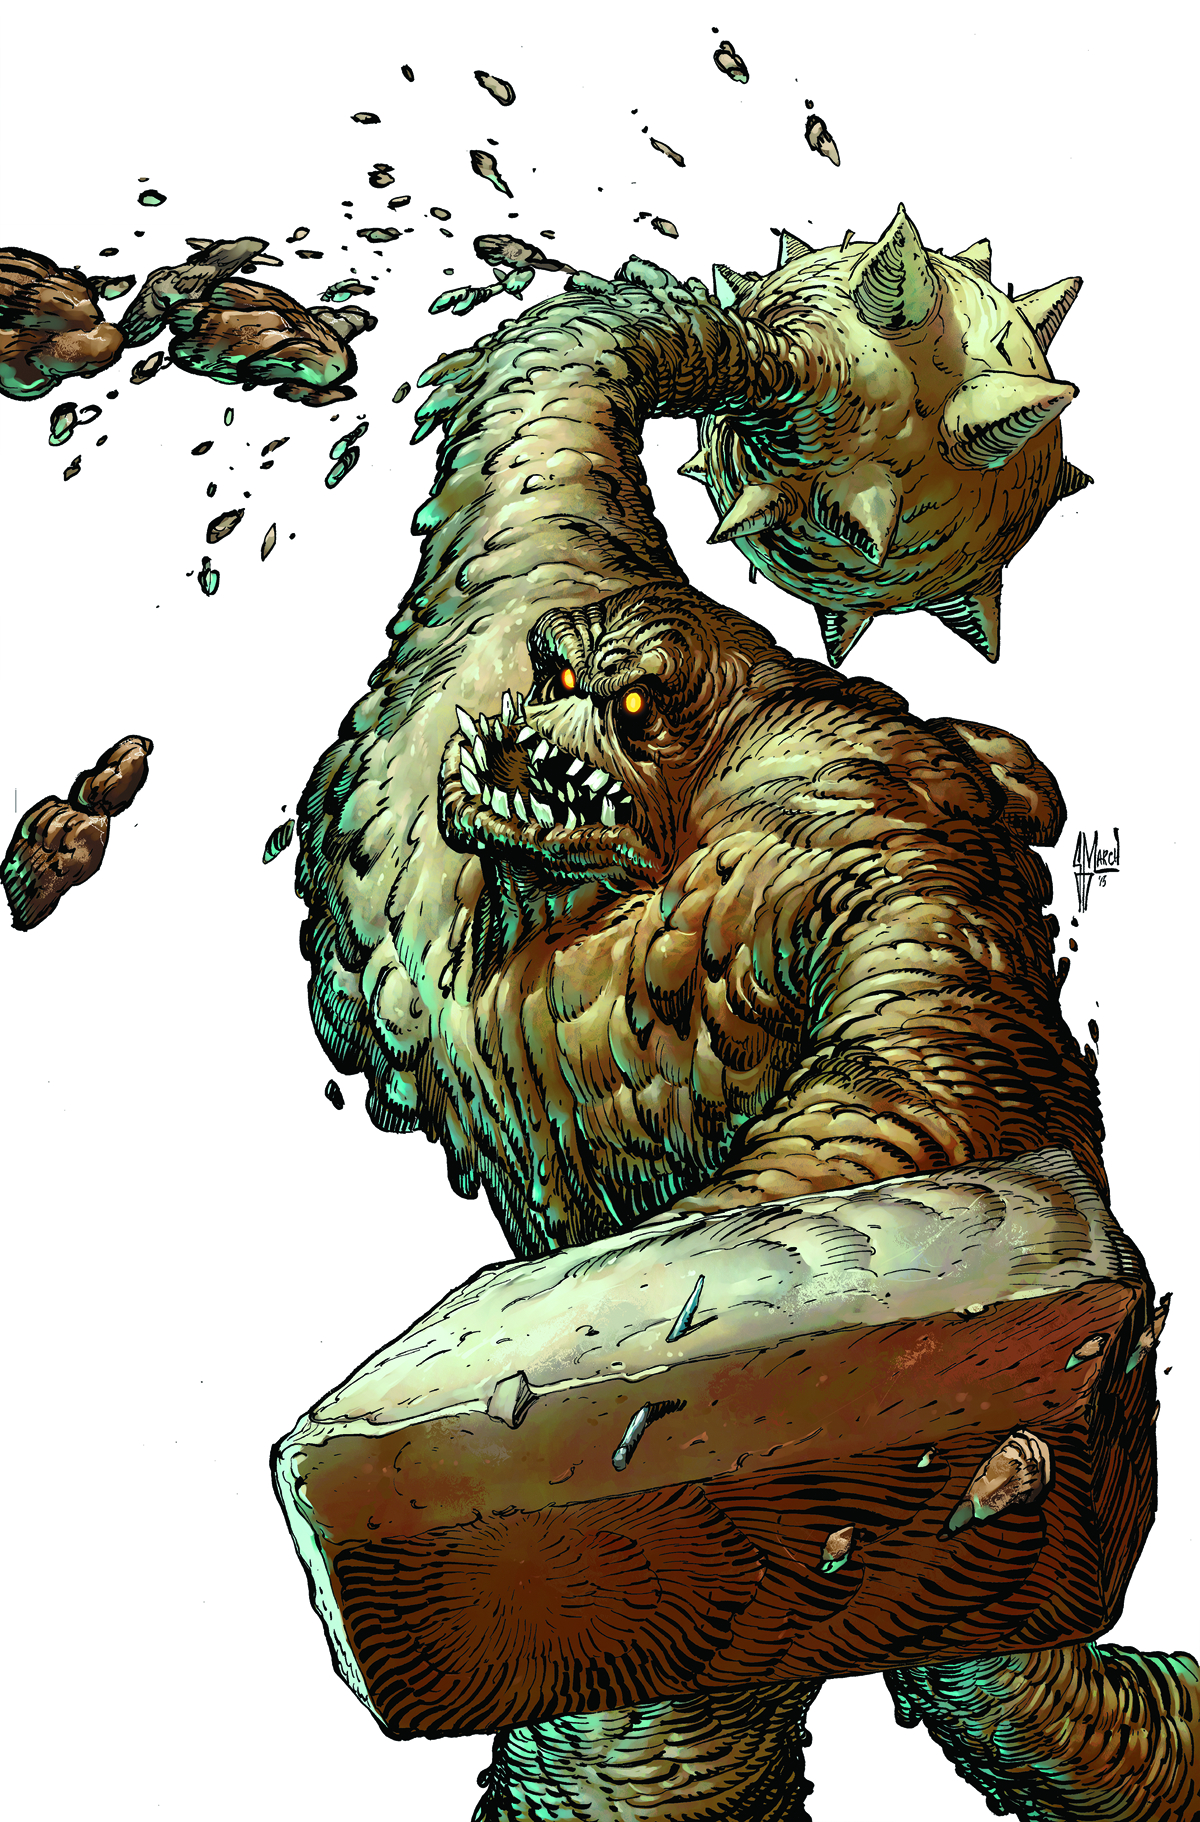 BATMAN THE DARK KNIGHT #23.3 CLAYFACE